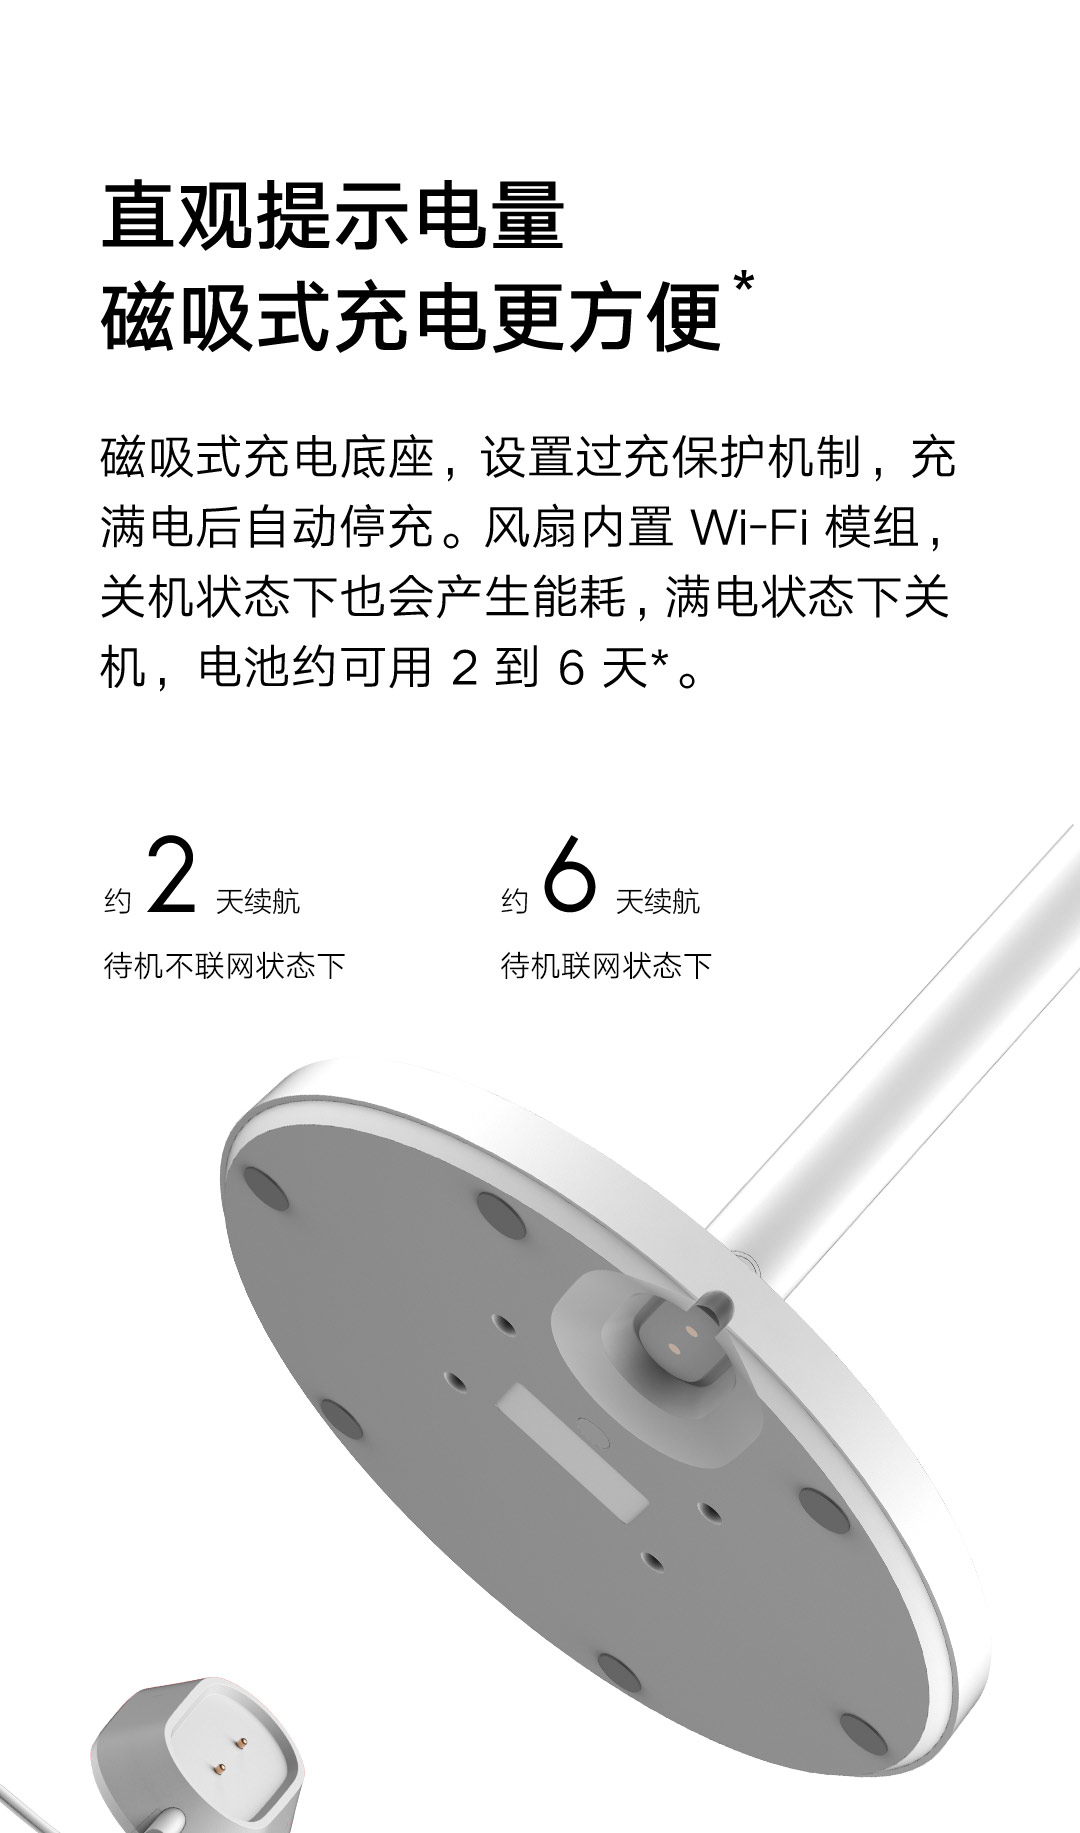 Xiaomi Mijia DC Fan Battery Edition, the new Xiaomi fan now cable free